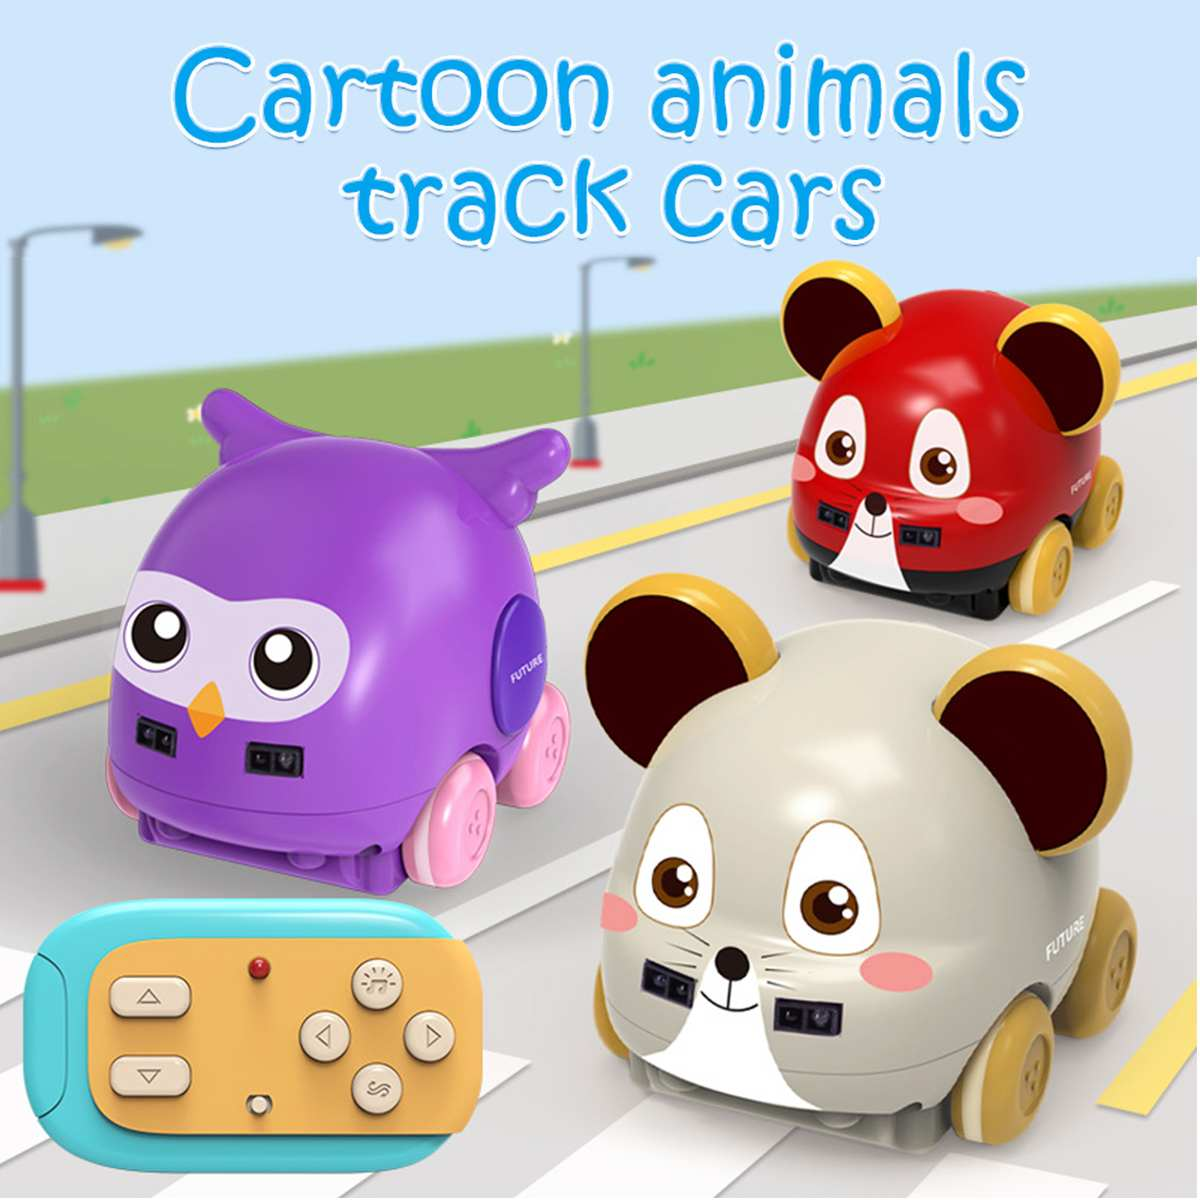 RC Robot Cartoon Animal Toys Wireless Pet Light Rechargeable Remote Control Electronic Animal Car Intelligent Robot Kids Toys